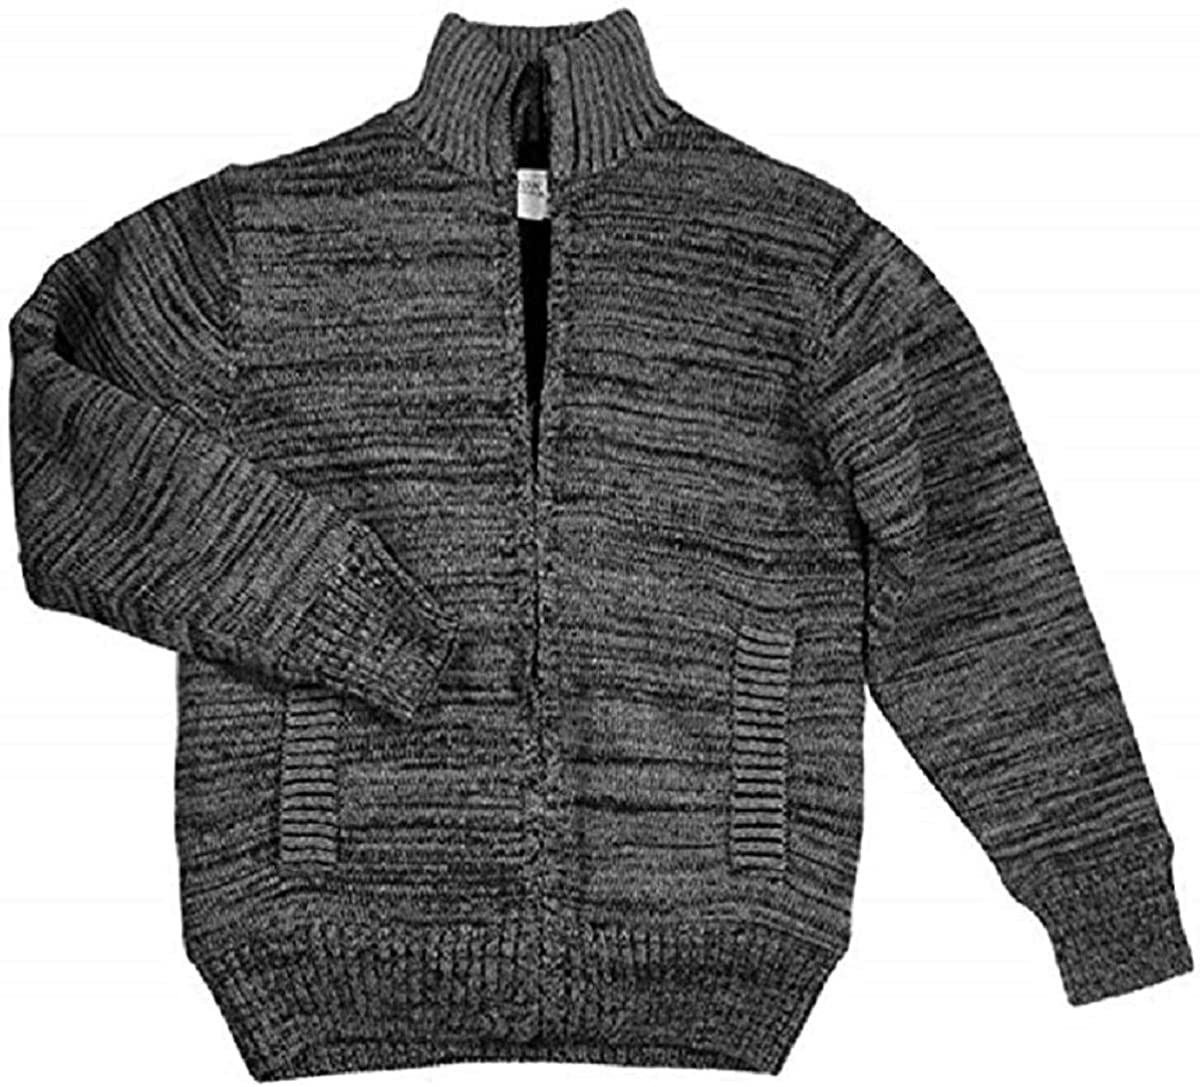 Boston Traders Full Zip Sherpa Lined Sweater Jacket for Boys